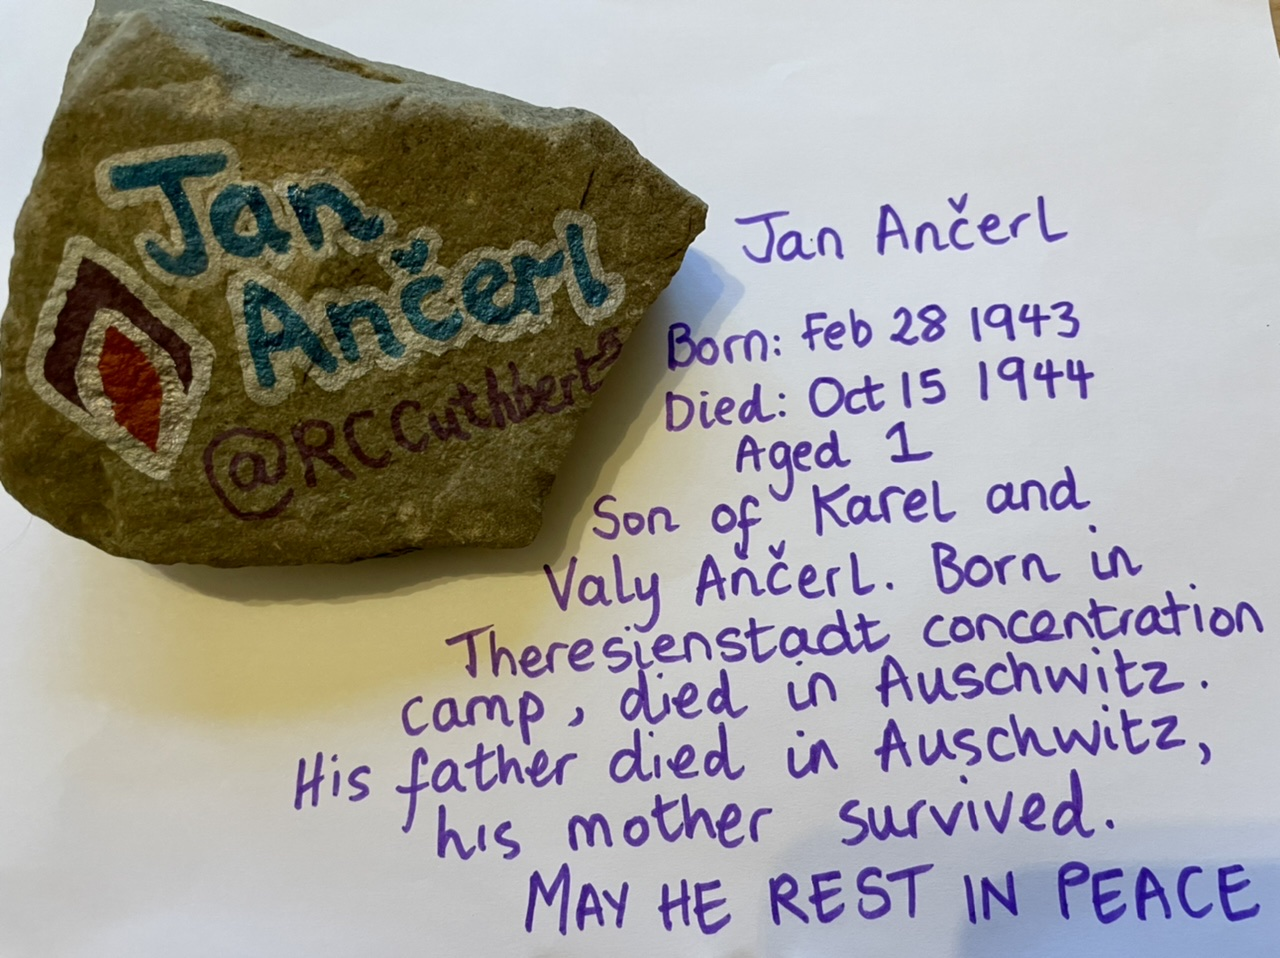 Researching and decorating stones to commemorate victims of the Holocaust